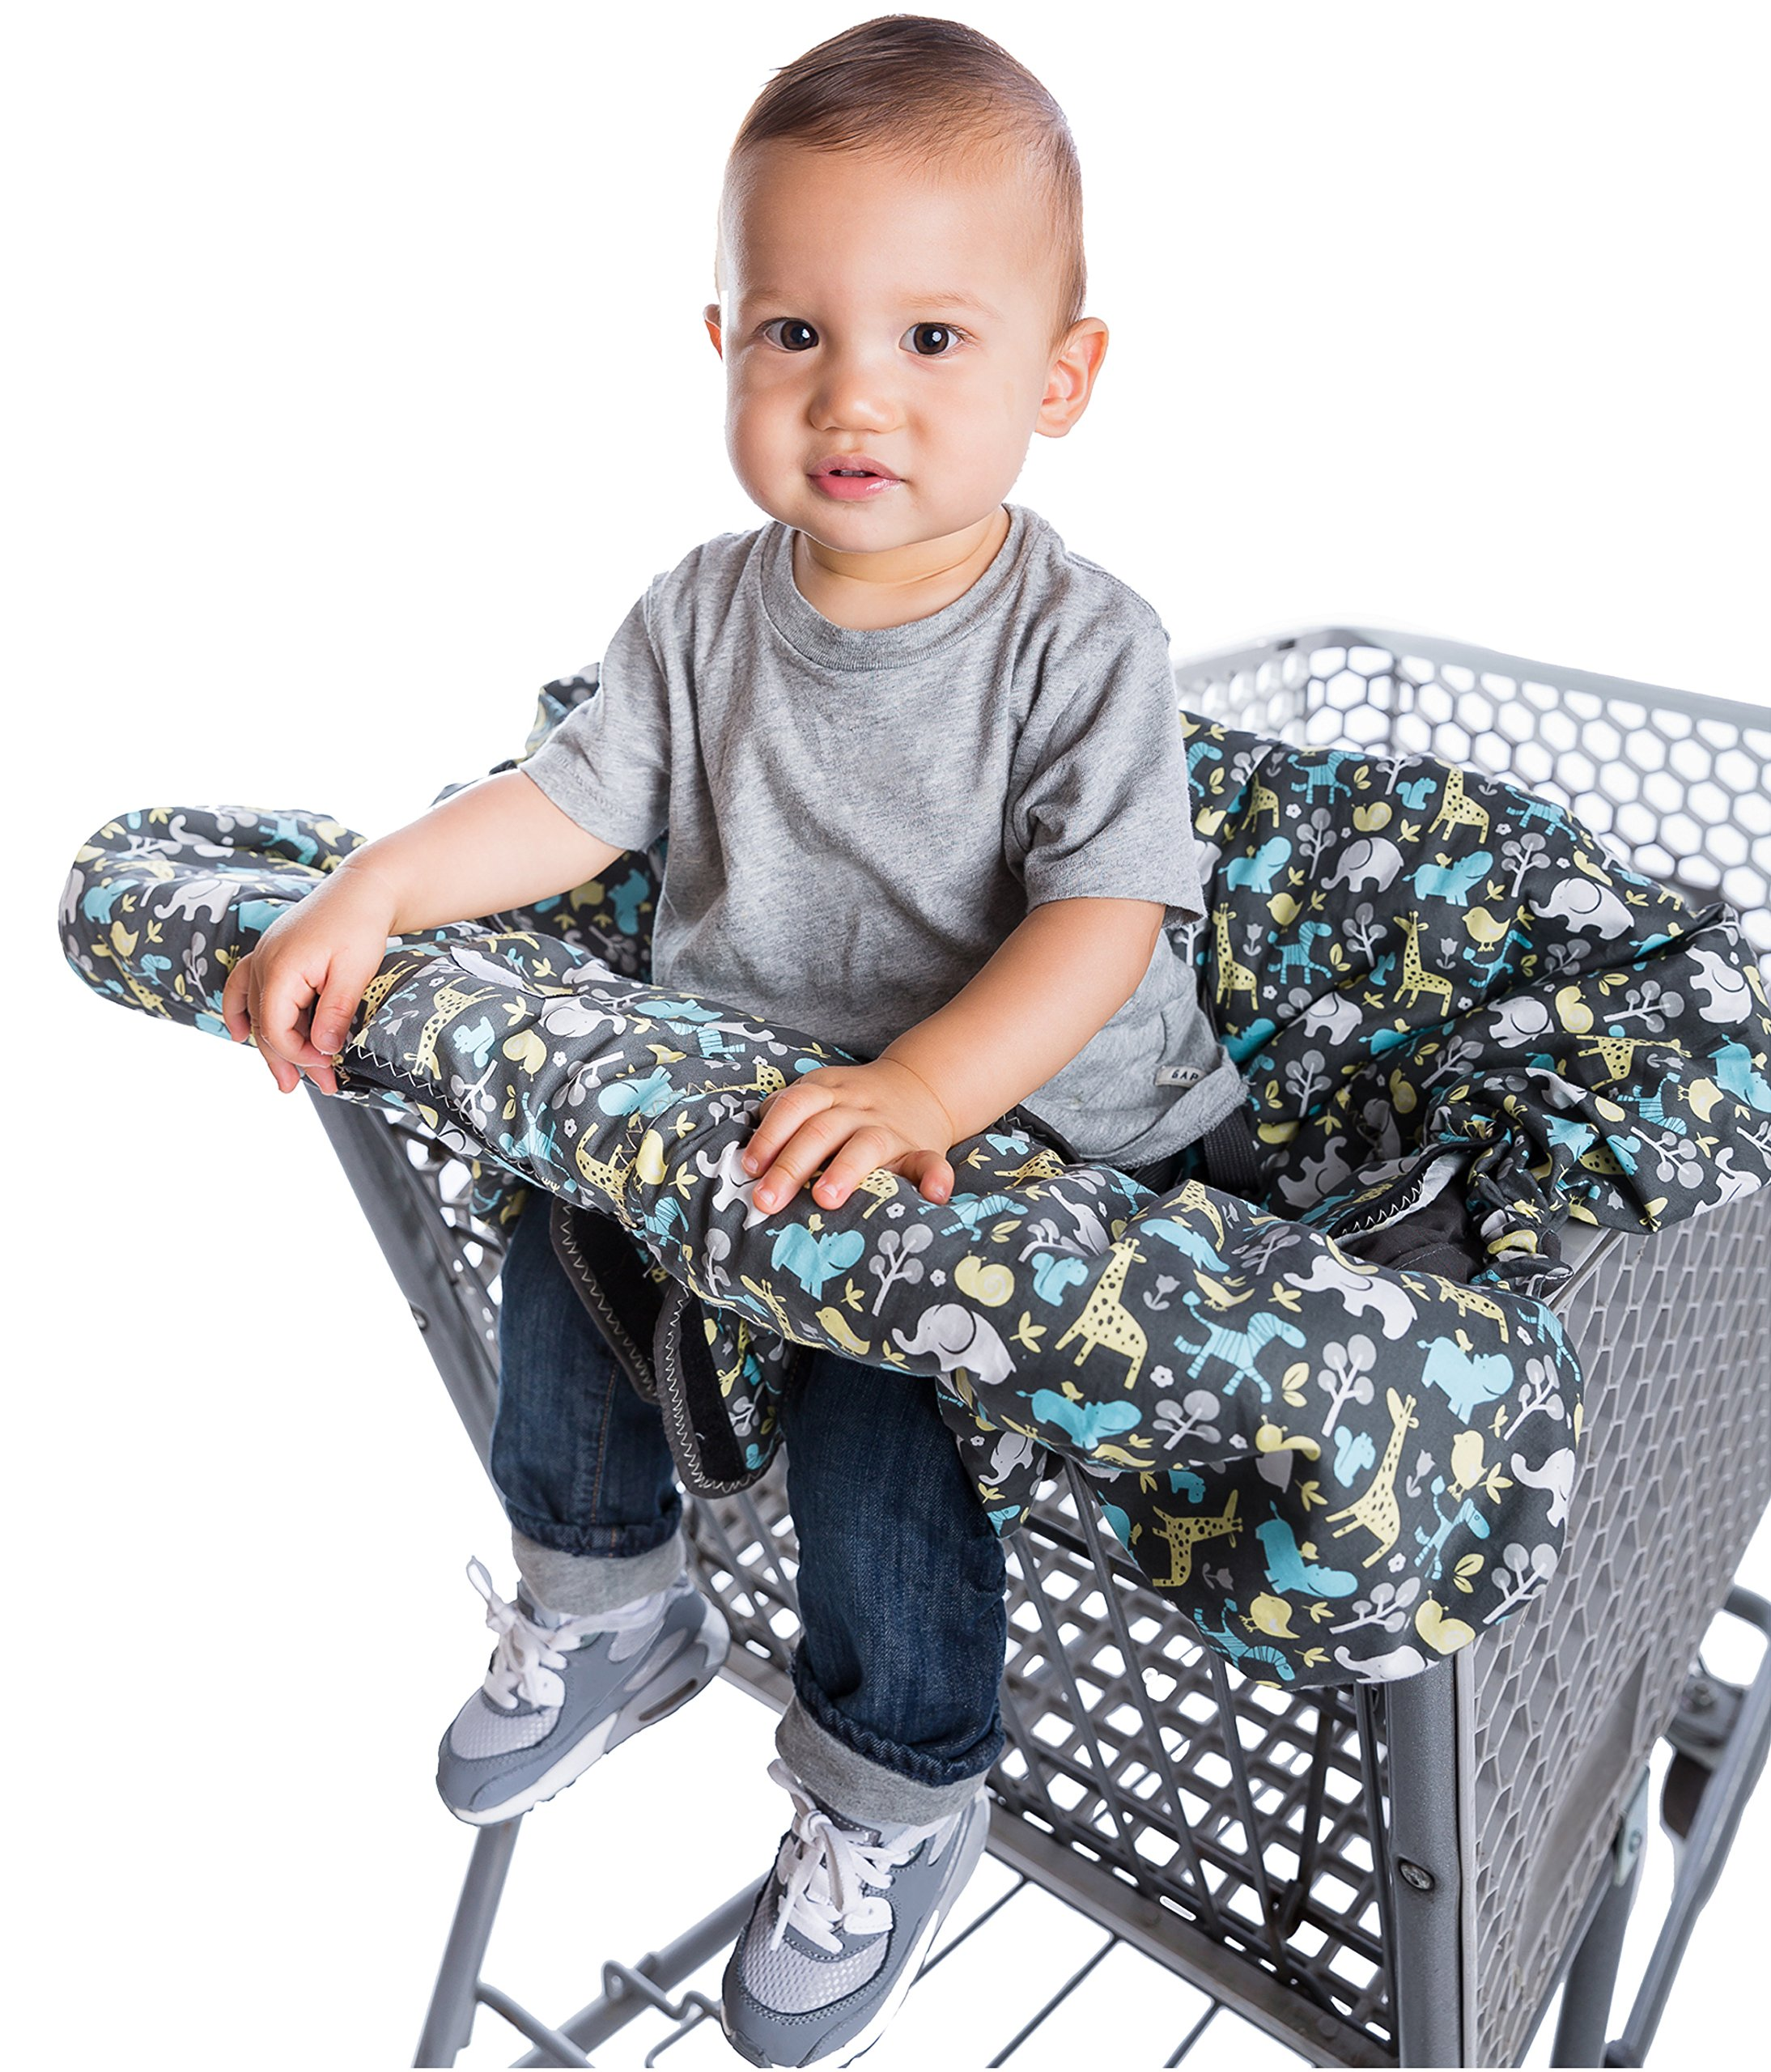 2-in-1 Shopping Cart Cover and High Chair Cover, Universal Fit, Ultra Plush, 100 Percent Cotton Upper, Full Safety Harness, Machine Washable for Baby, Toddler, Boy or Girl (Grey) by Heather and Heath Kids (Image #6)